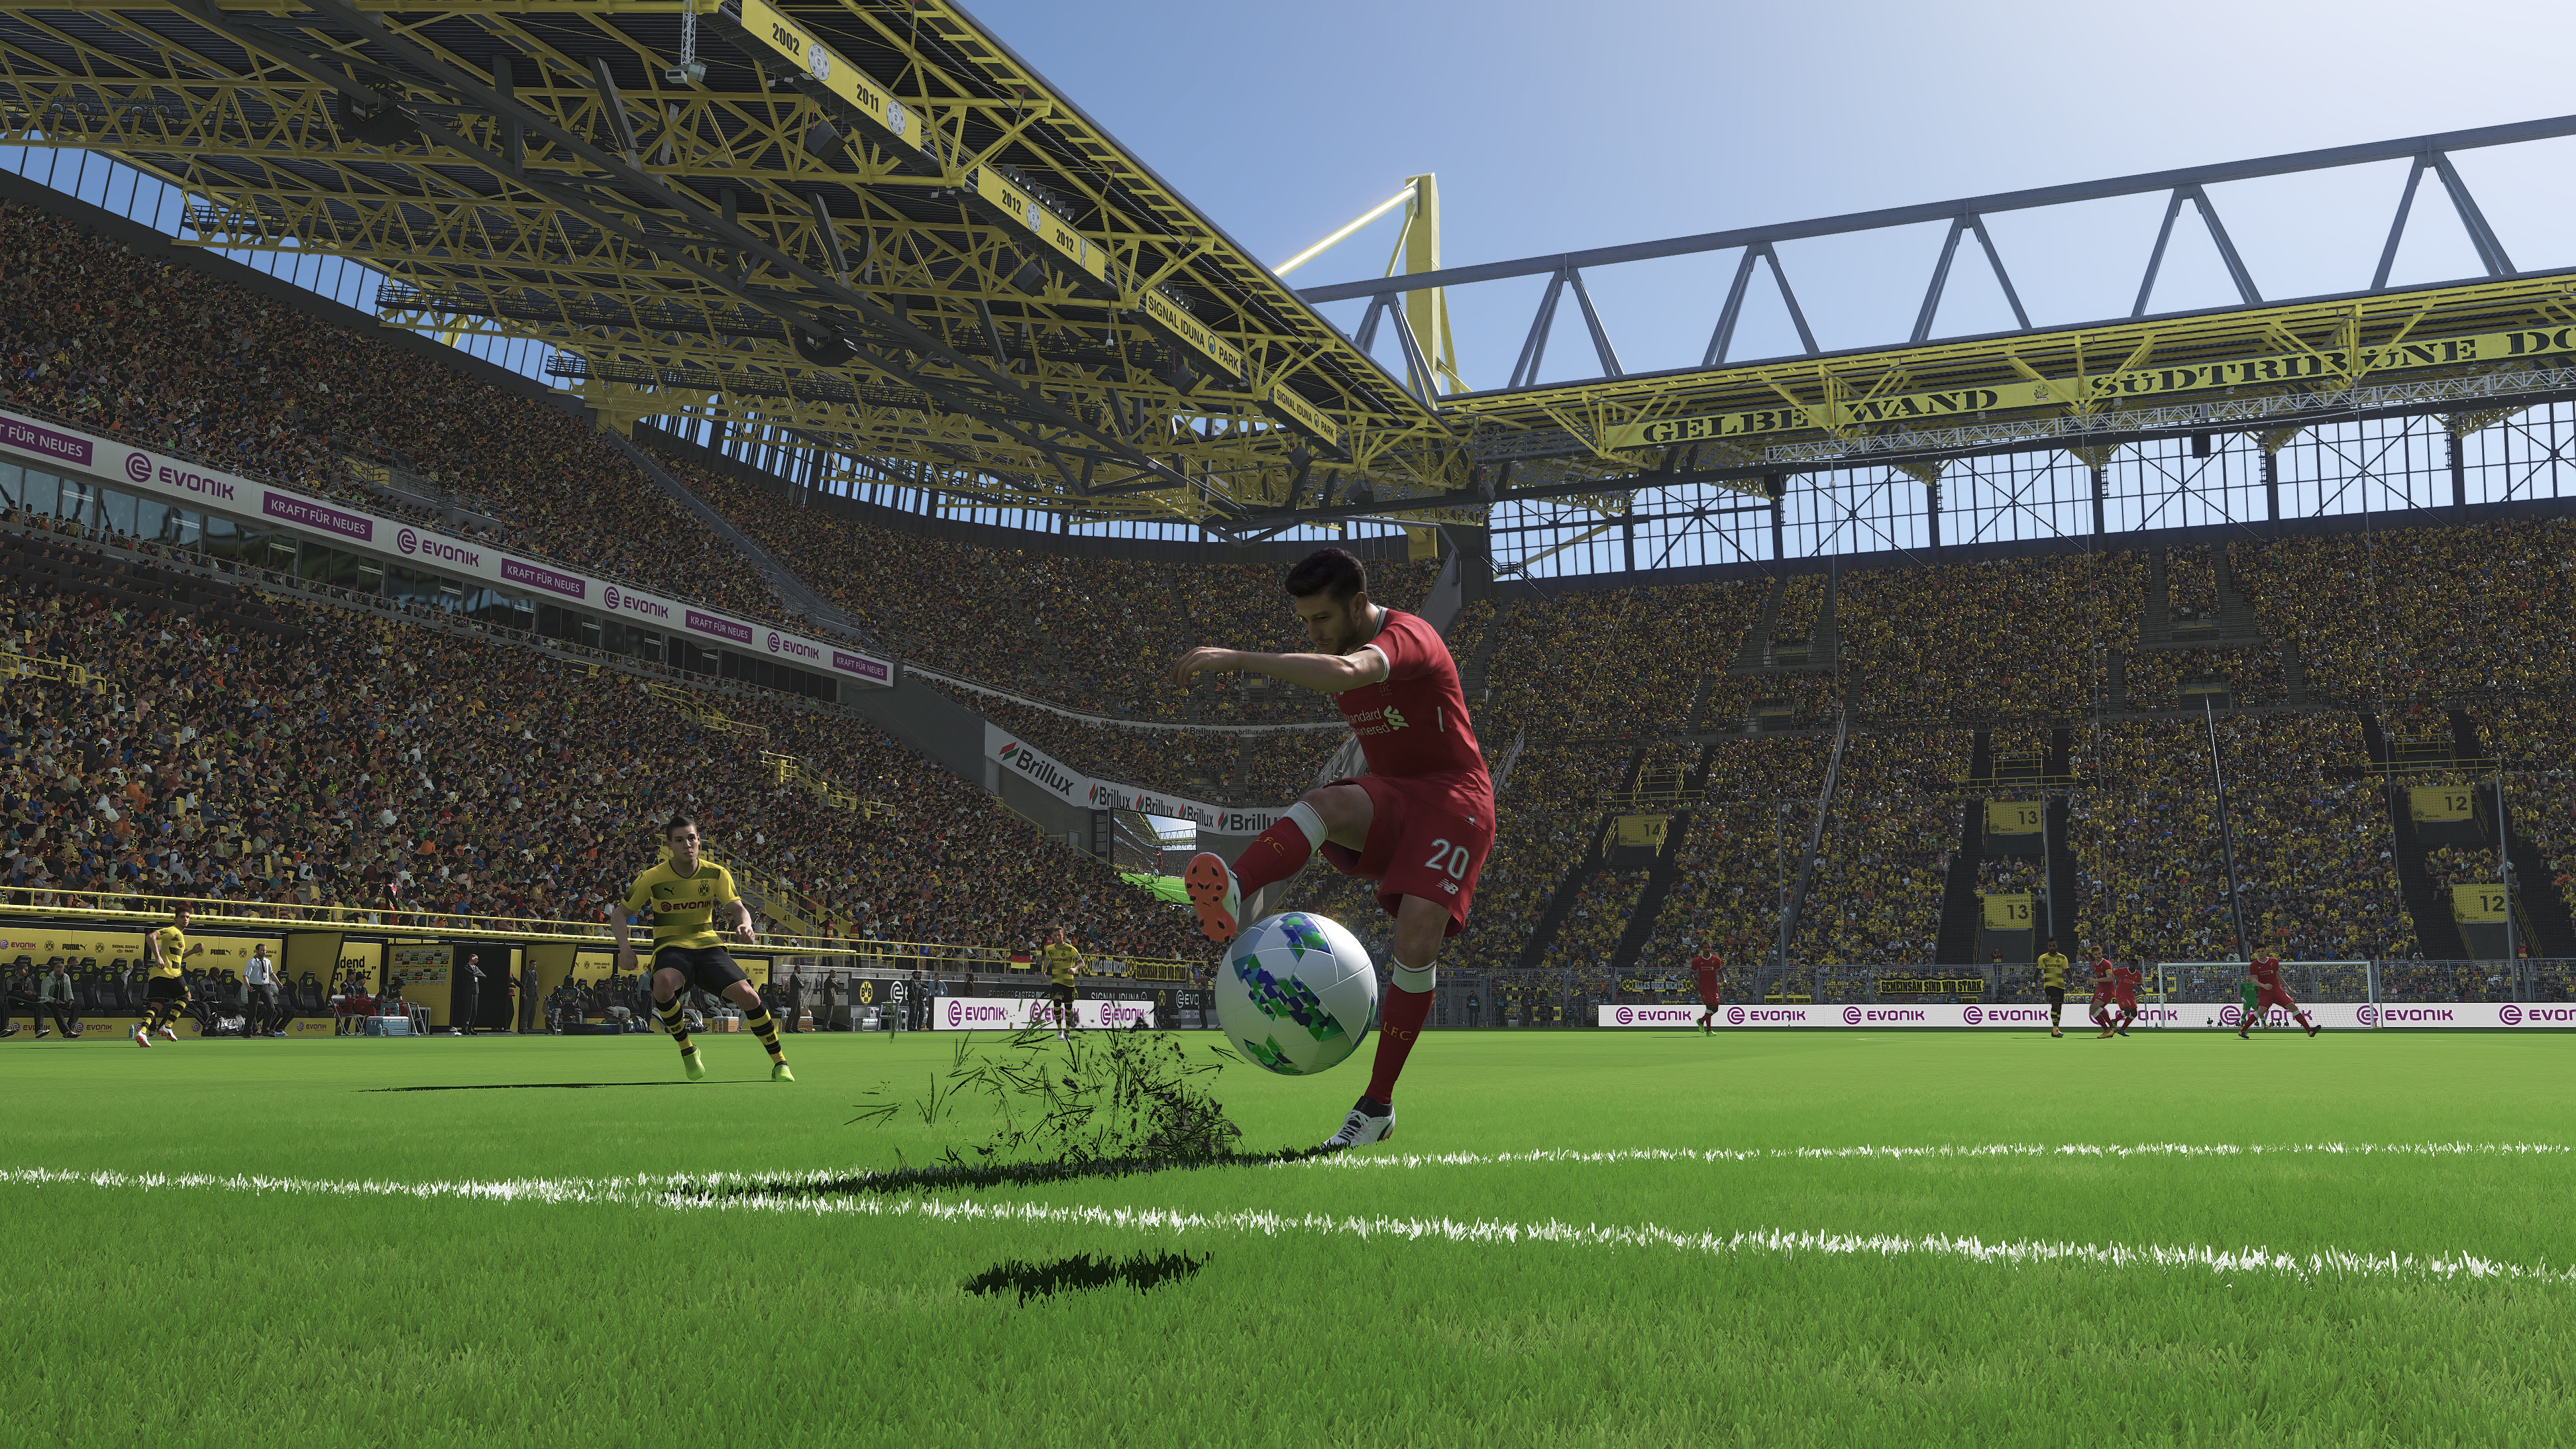 3840x2160 Pro Evolution Soccer 2018 NVIDIA Ansel 4K Screenshot